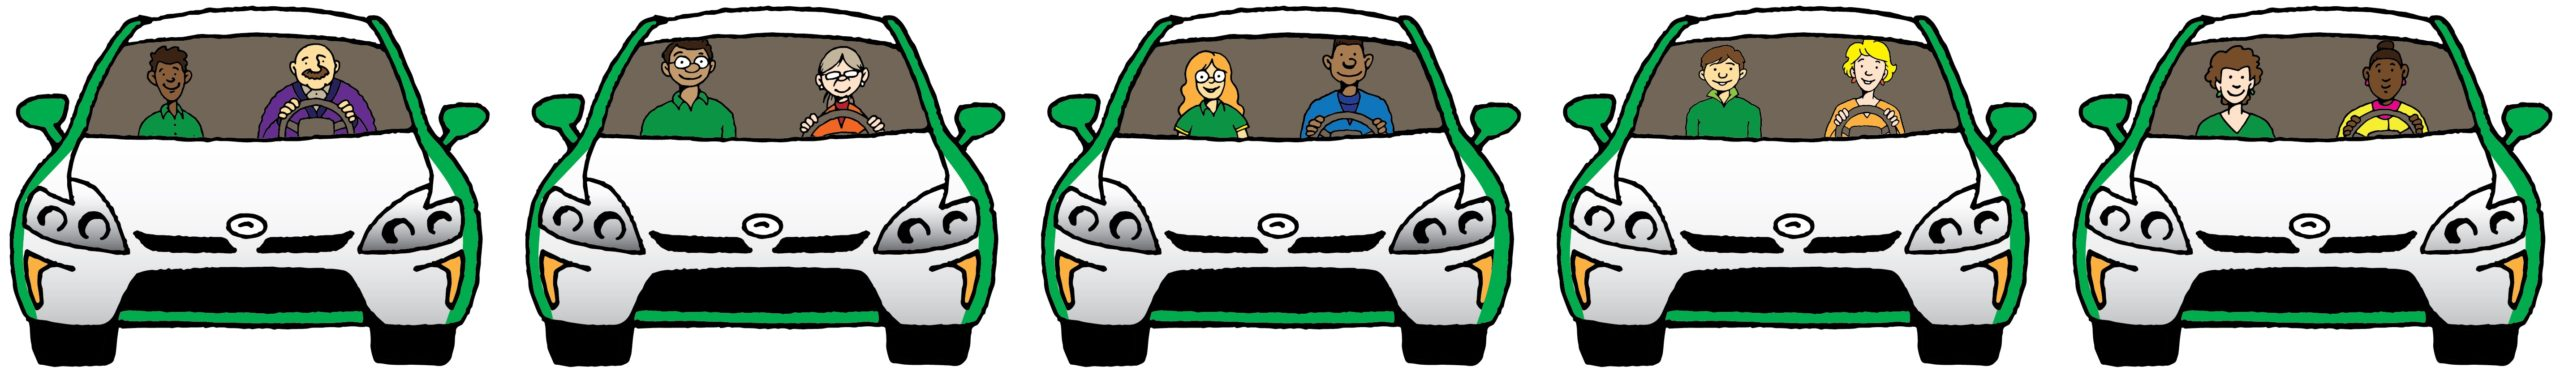 All about driving lessons at Drive Smart Georgia